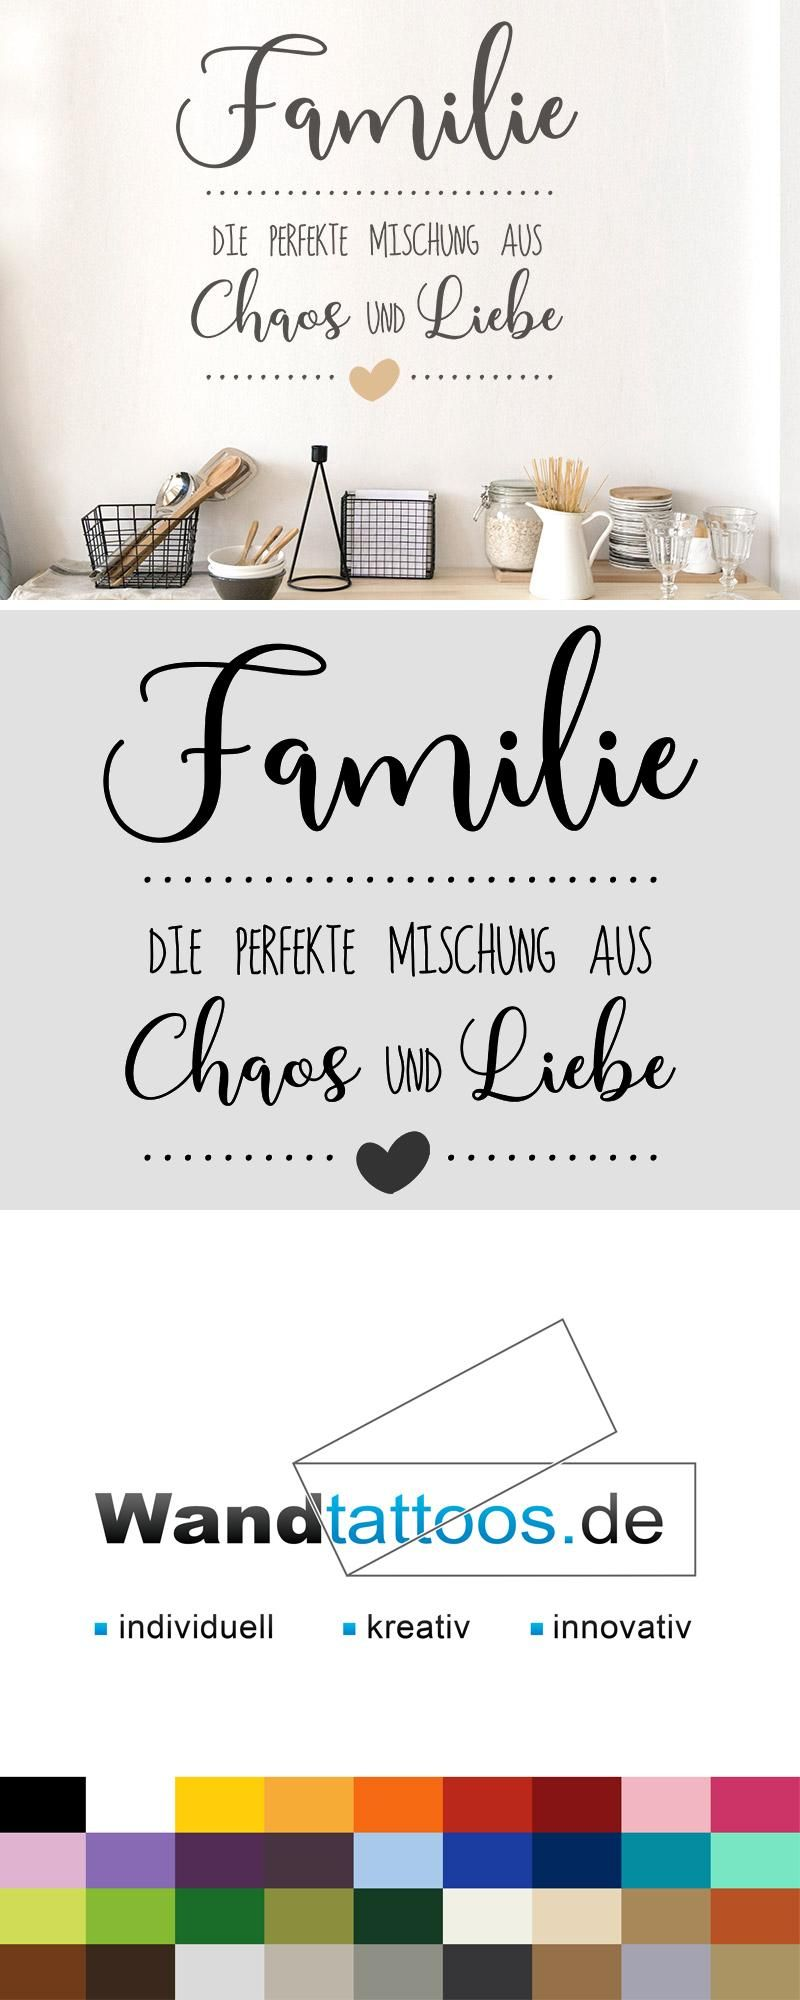 Photo of Wall Decal Family | The perfect mix Wandtattoos.de